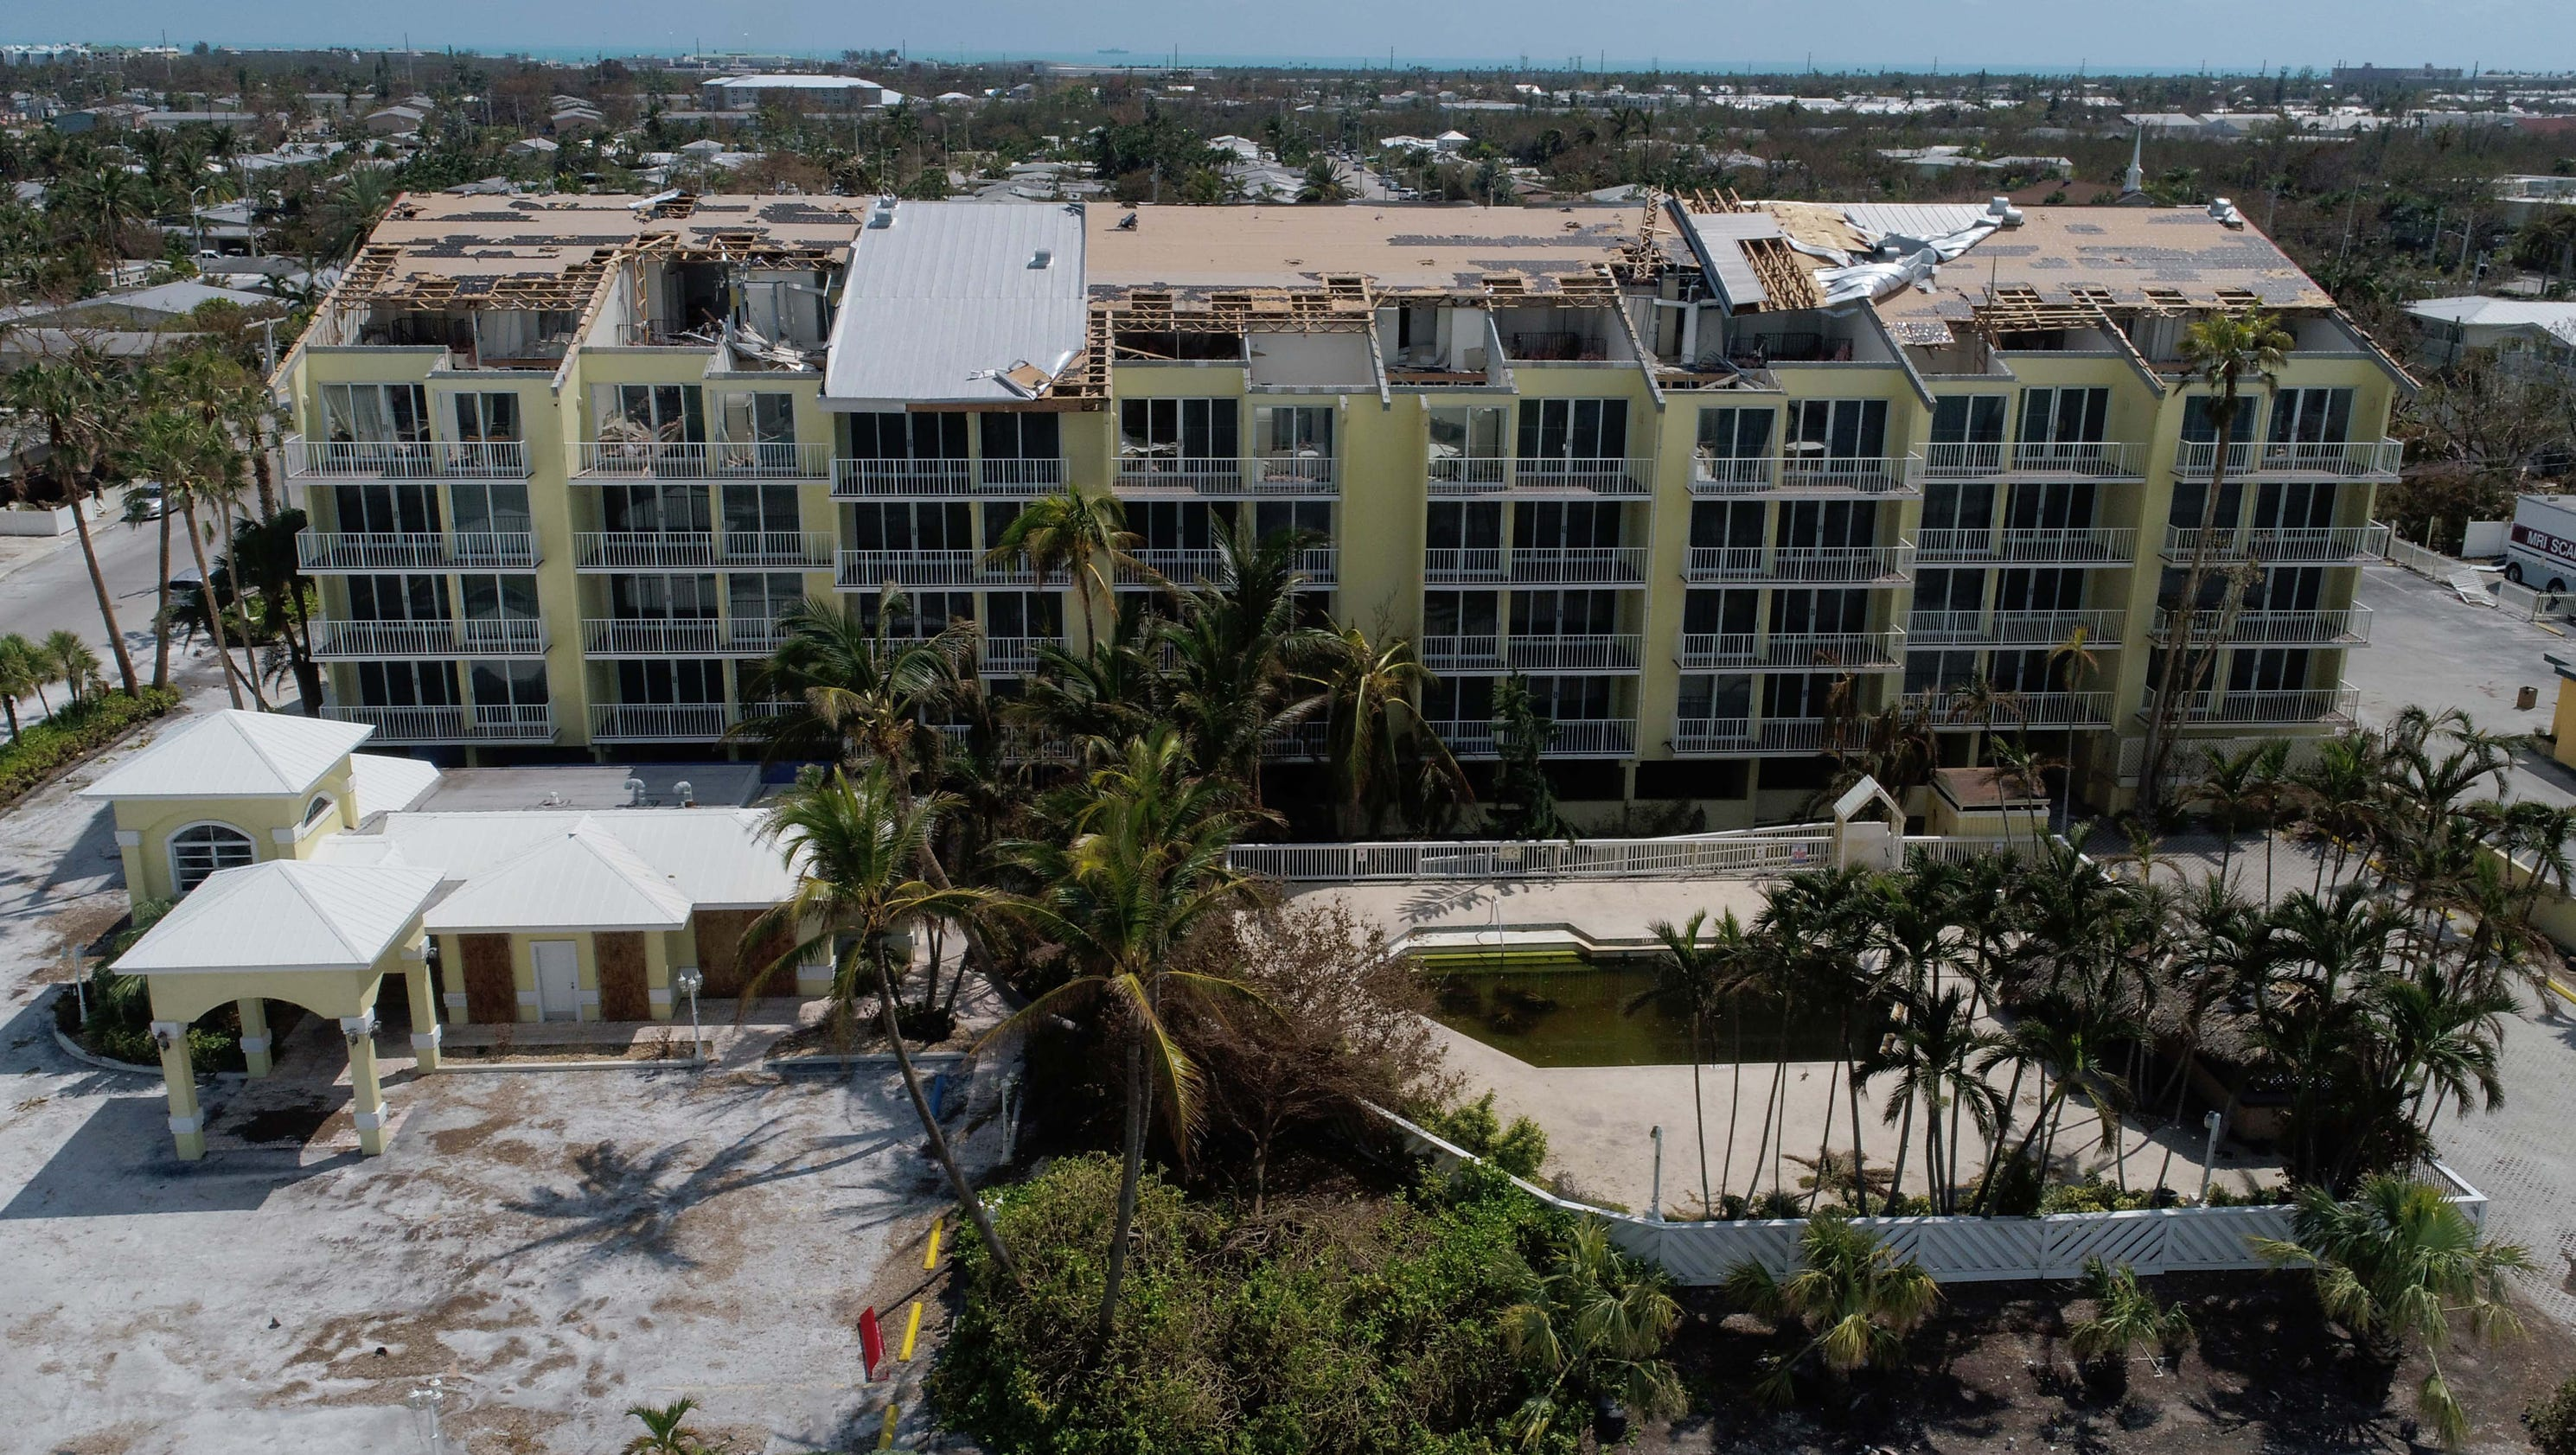 Irma Recovery Key West Could Be Off Cruise Schedules For Weeks - Key west cruise ship calendar